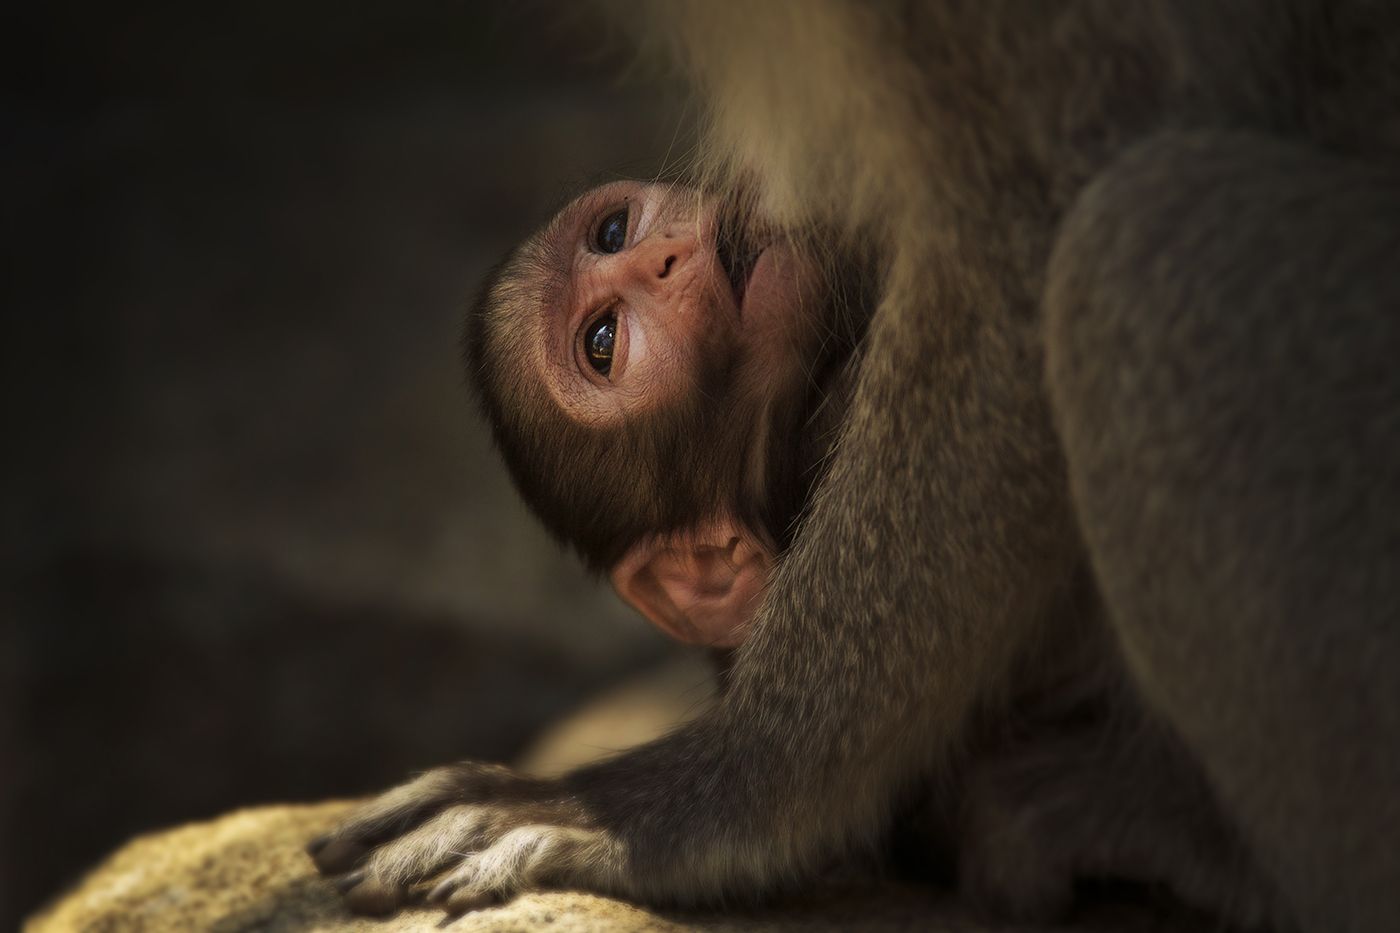 Baby Monkey Talley Smith